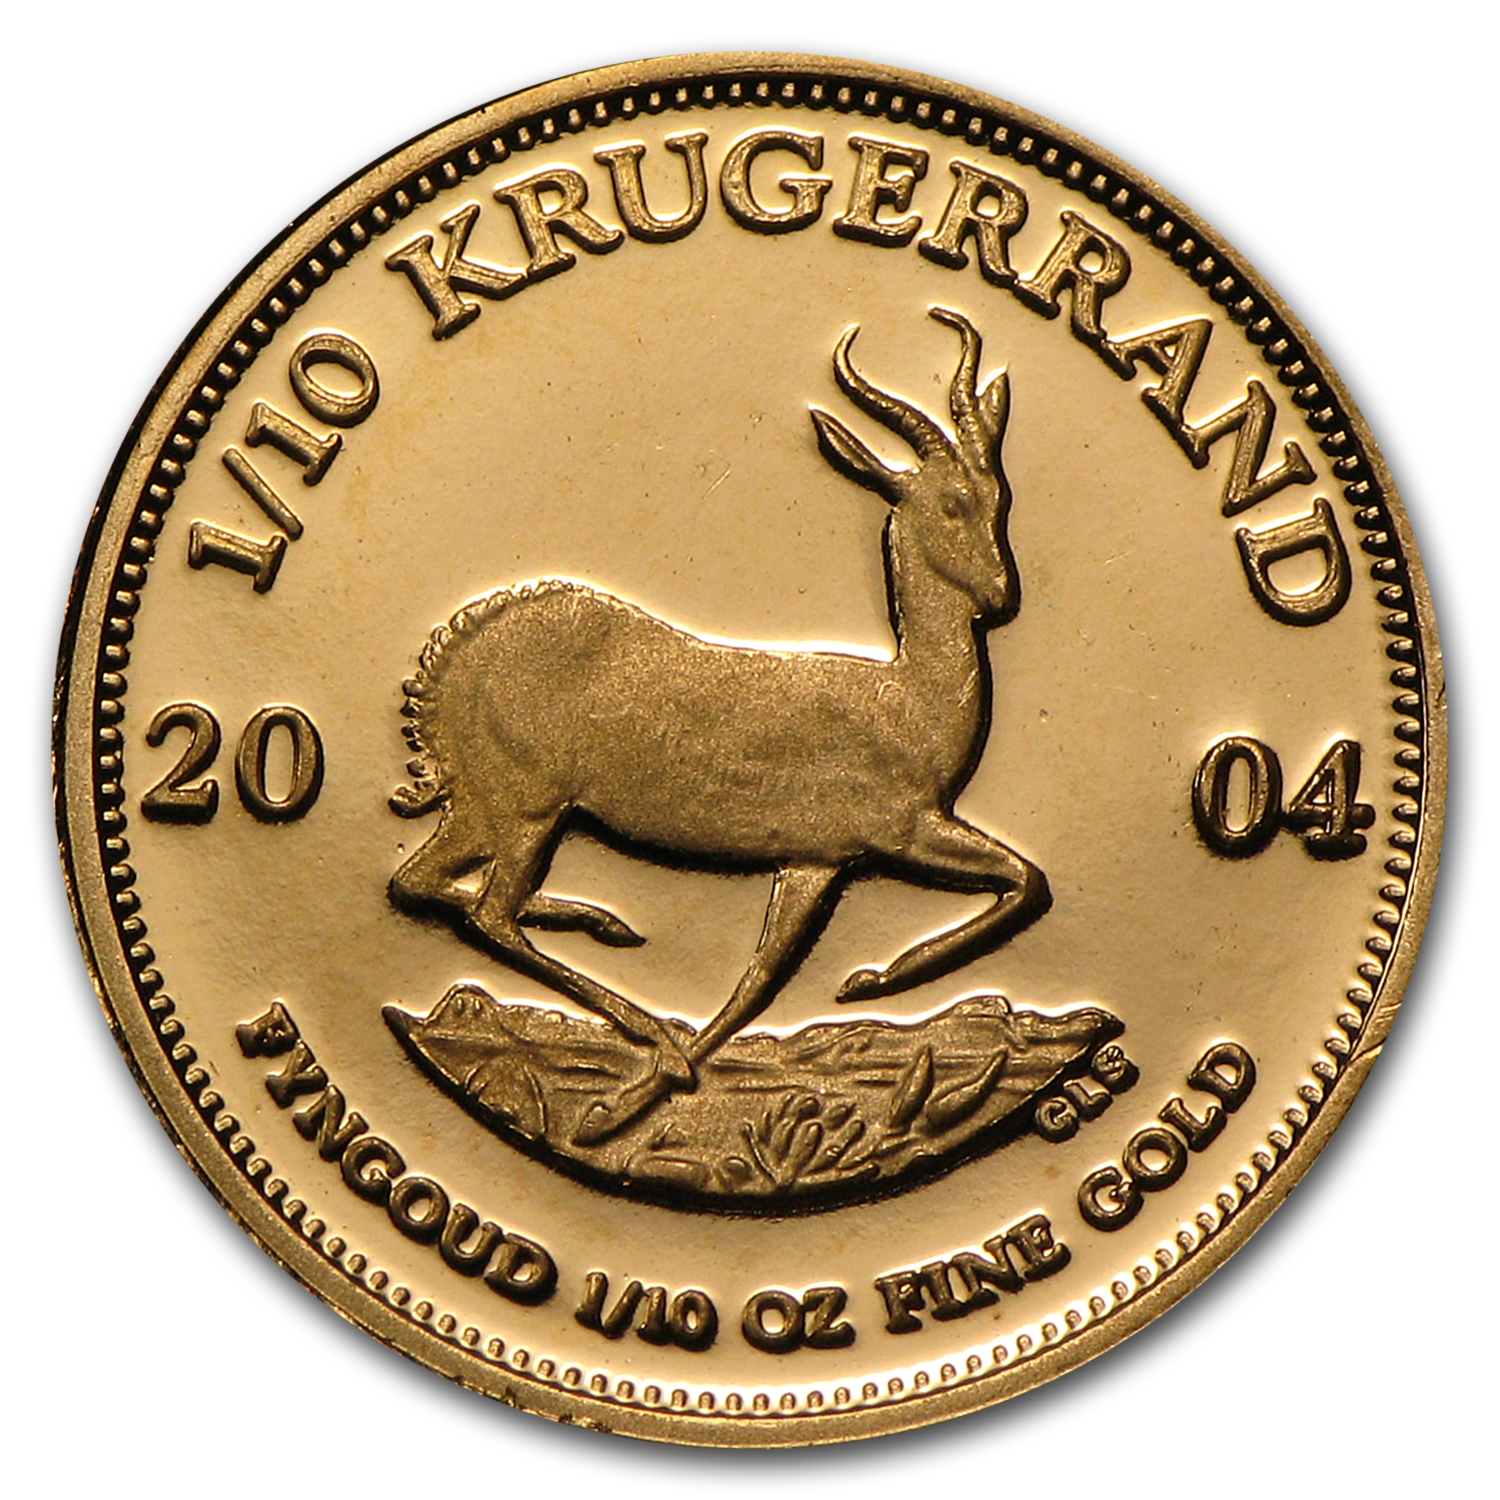 2004 South Africa 1/10 oz Proof Gold Krugerrand